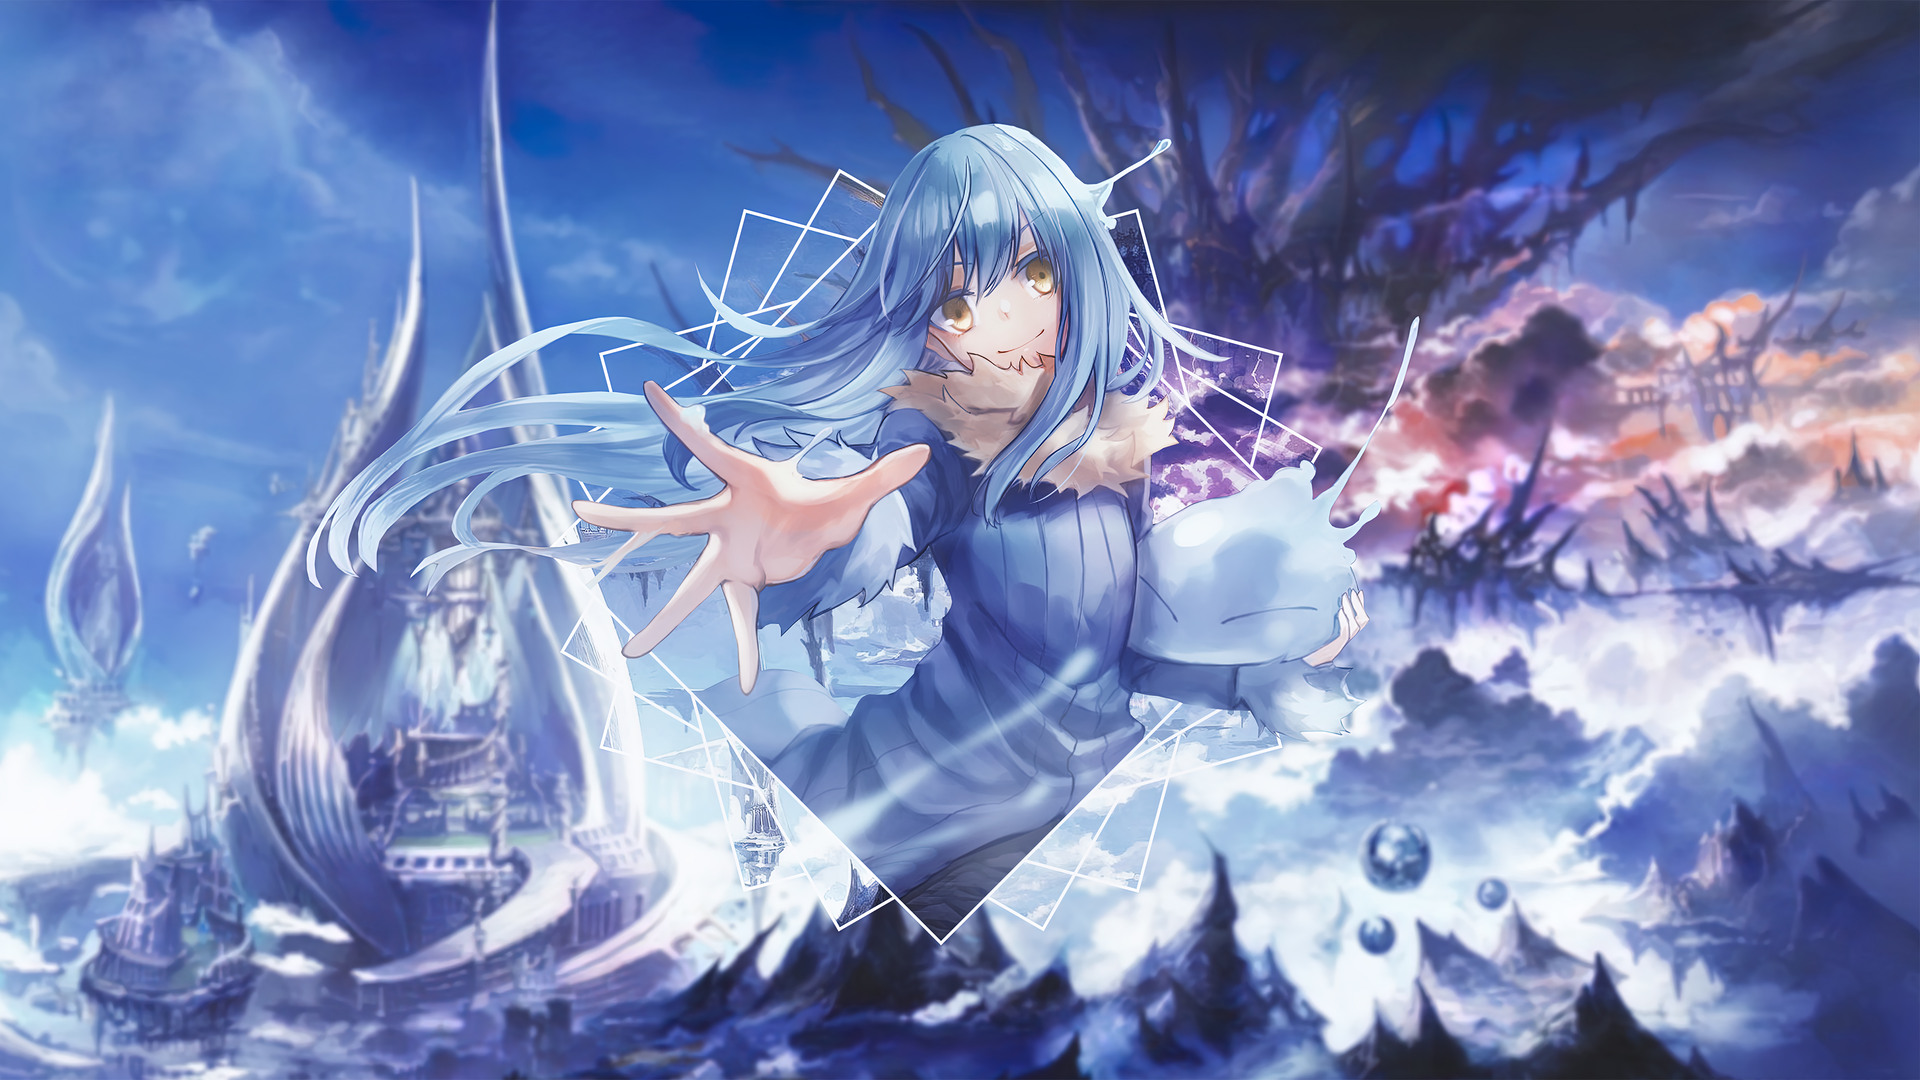 Download rimuru tempest 4k wallpapers apk 4.0.0 for android. Rimuru Tempest That Time I Got Reincarnated As A Slime Wallpaper 4k 3 3312